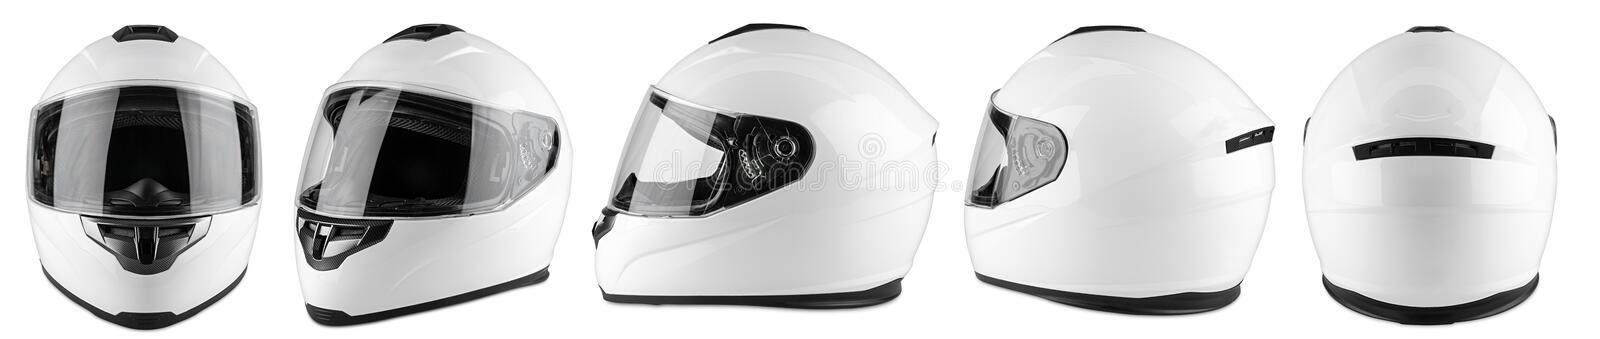 Set collection of white motorcycle carbon integral crash helmet isolated white background. motorsport car kart racing. Set collection of white motorcycle carbon royalty free stock photos